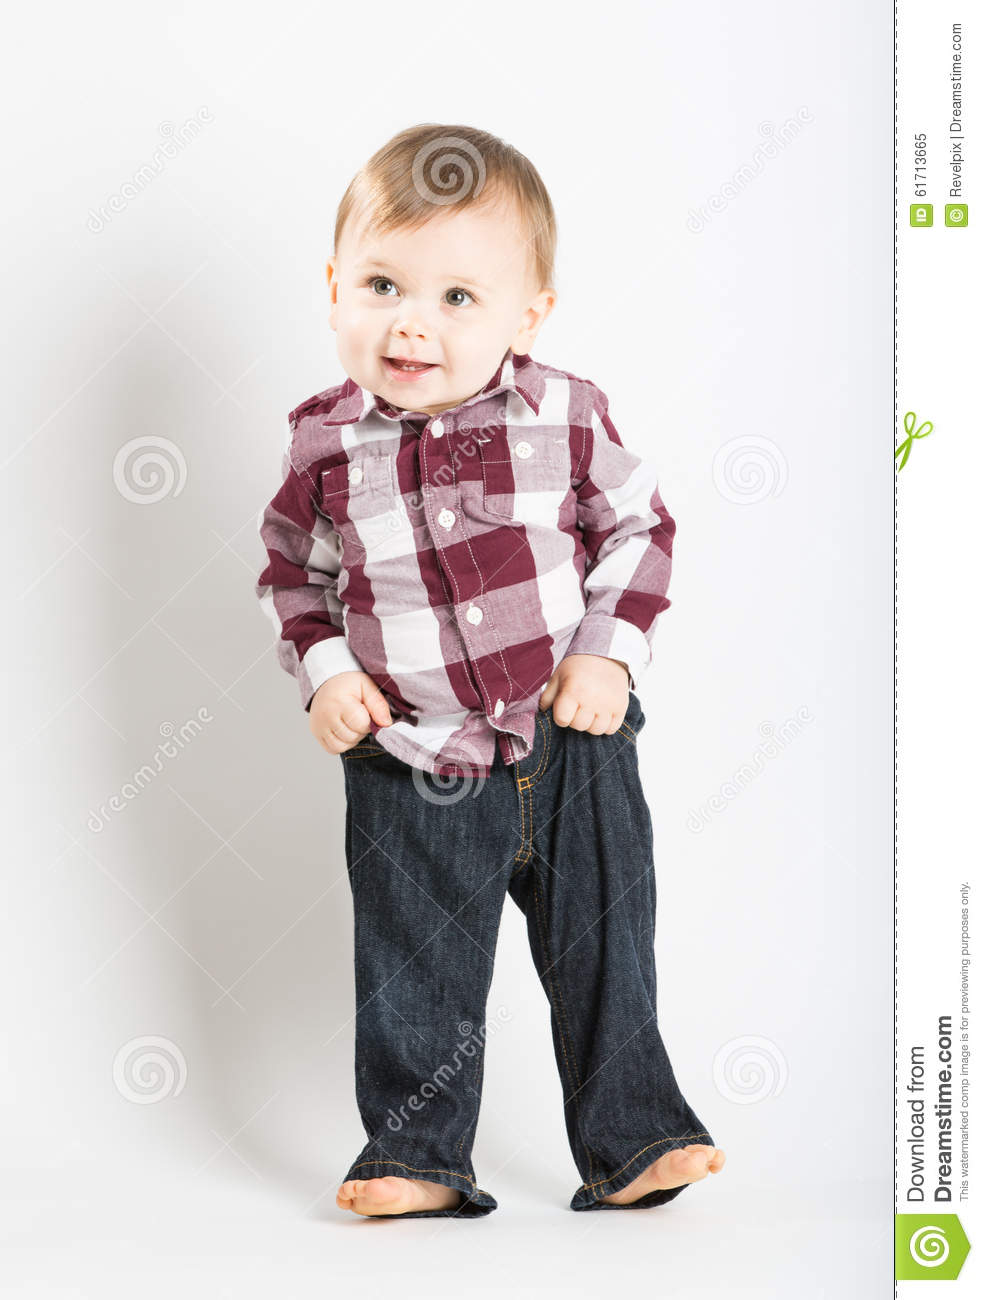 Baby Stands In Flannel And Jeans Pulling Up Pants Stock